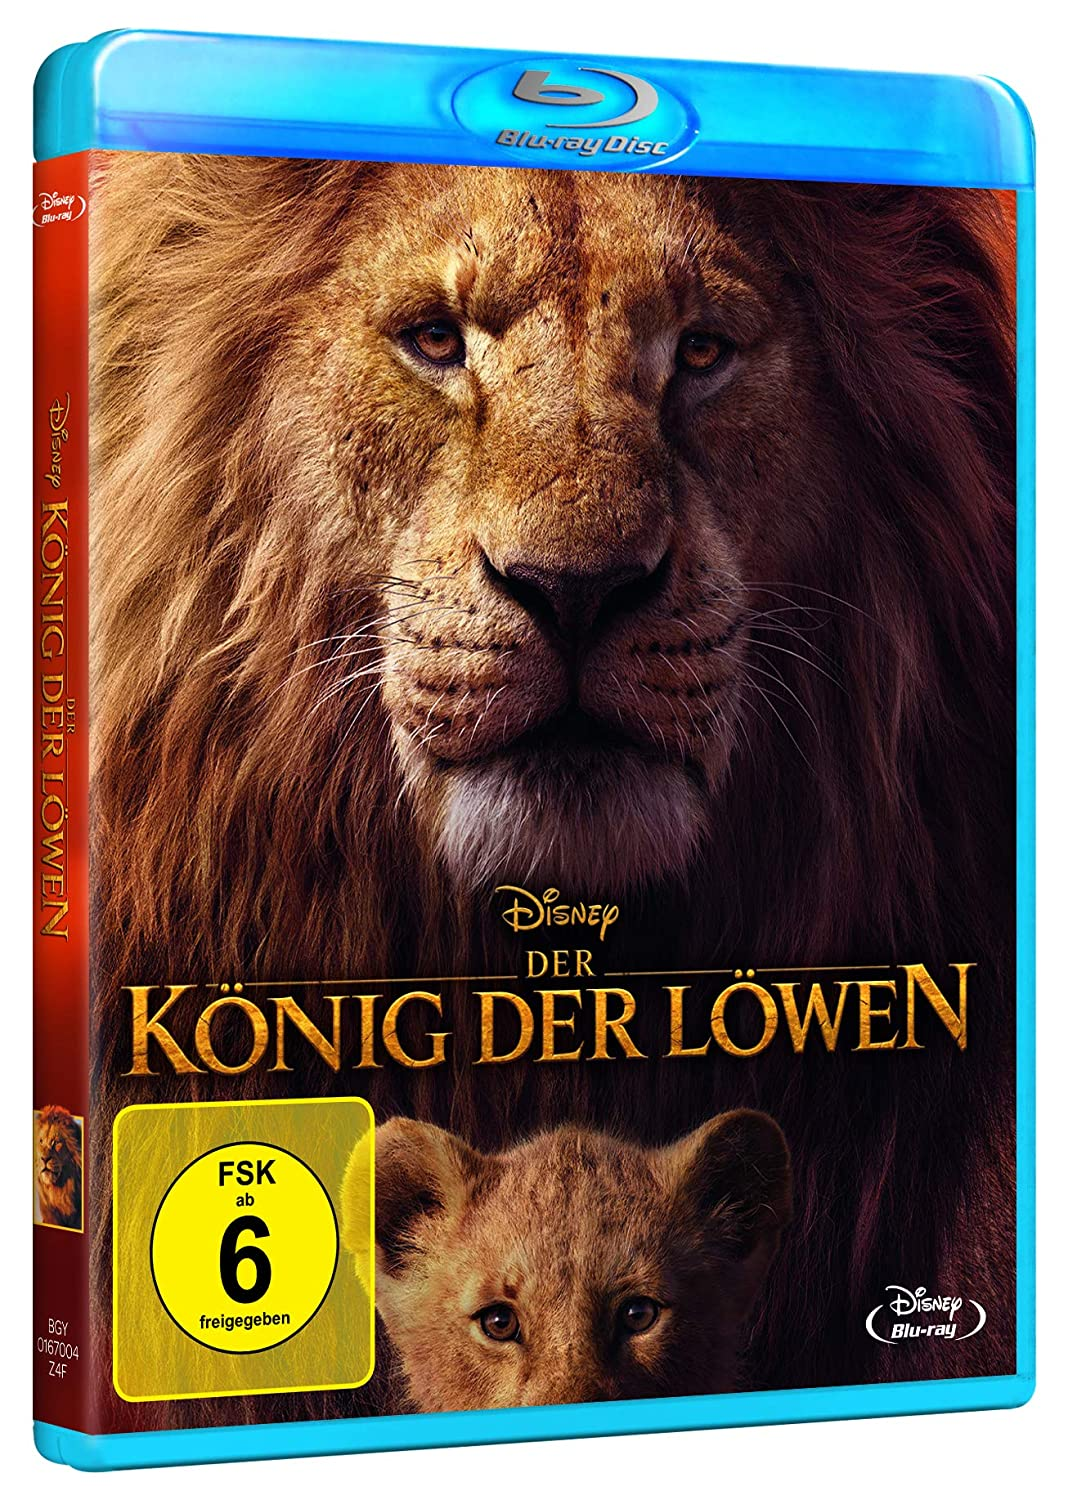 Der Konig Der Lowen Neuverfilmung 2019 Blu Ray Amazon De